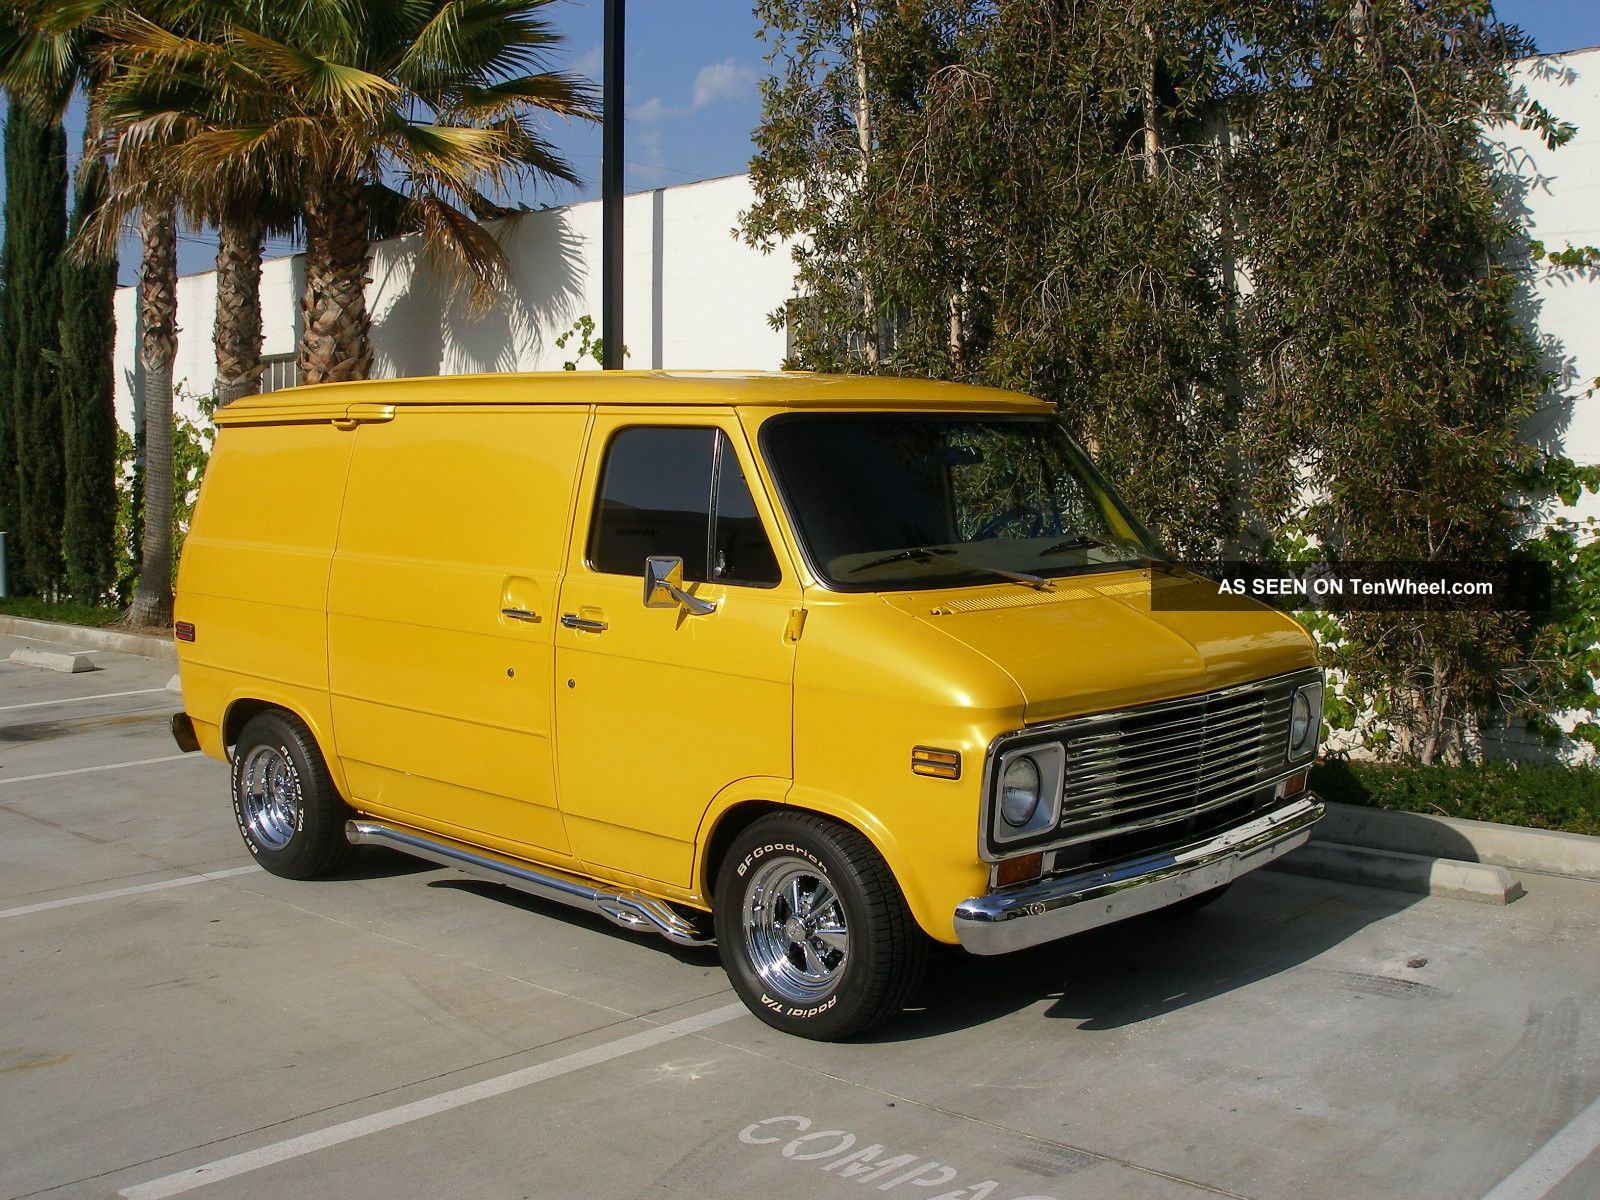 1977 Chevy Shorty Van G20 Van photo